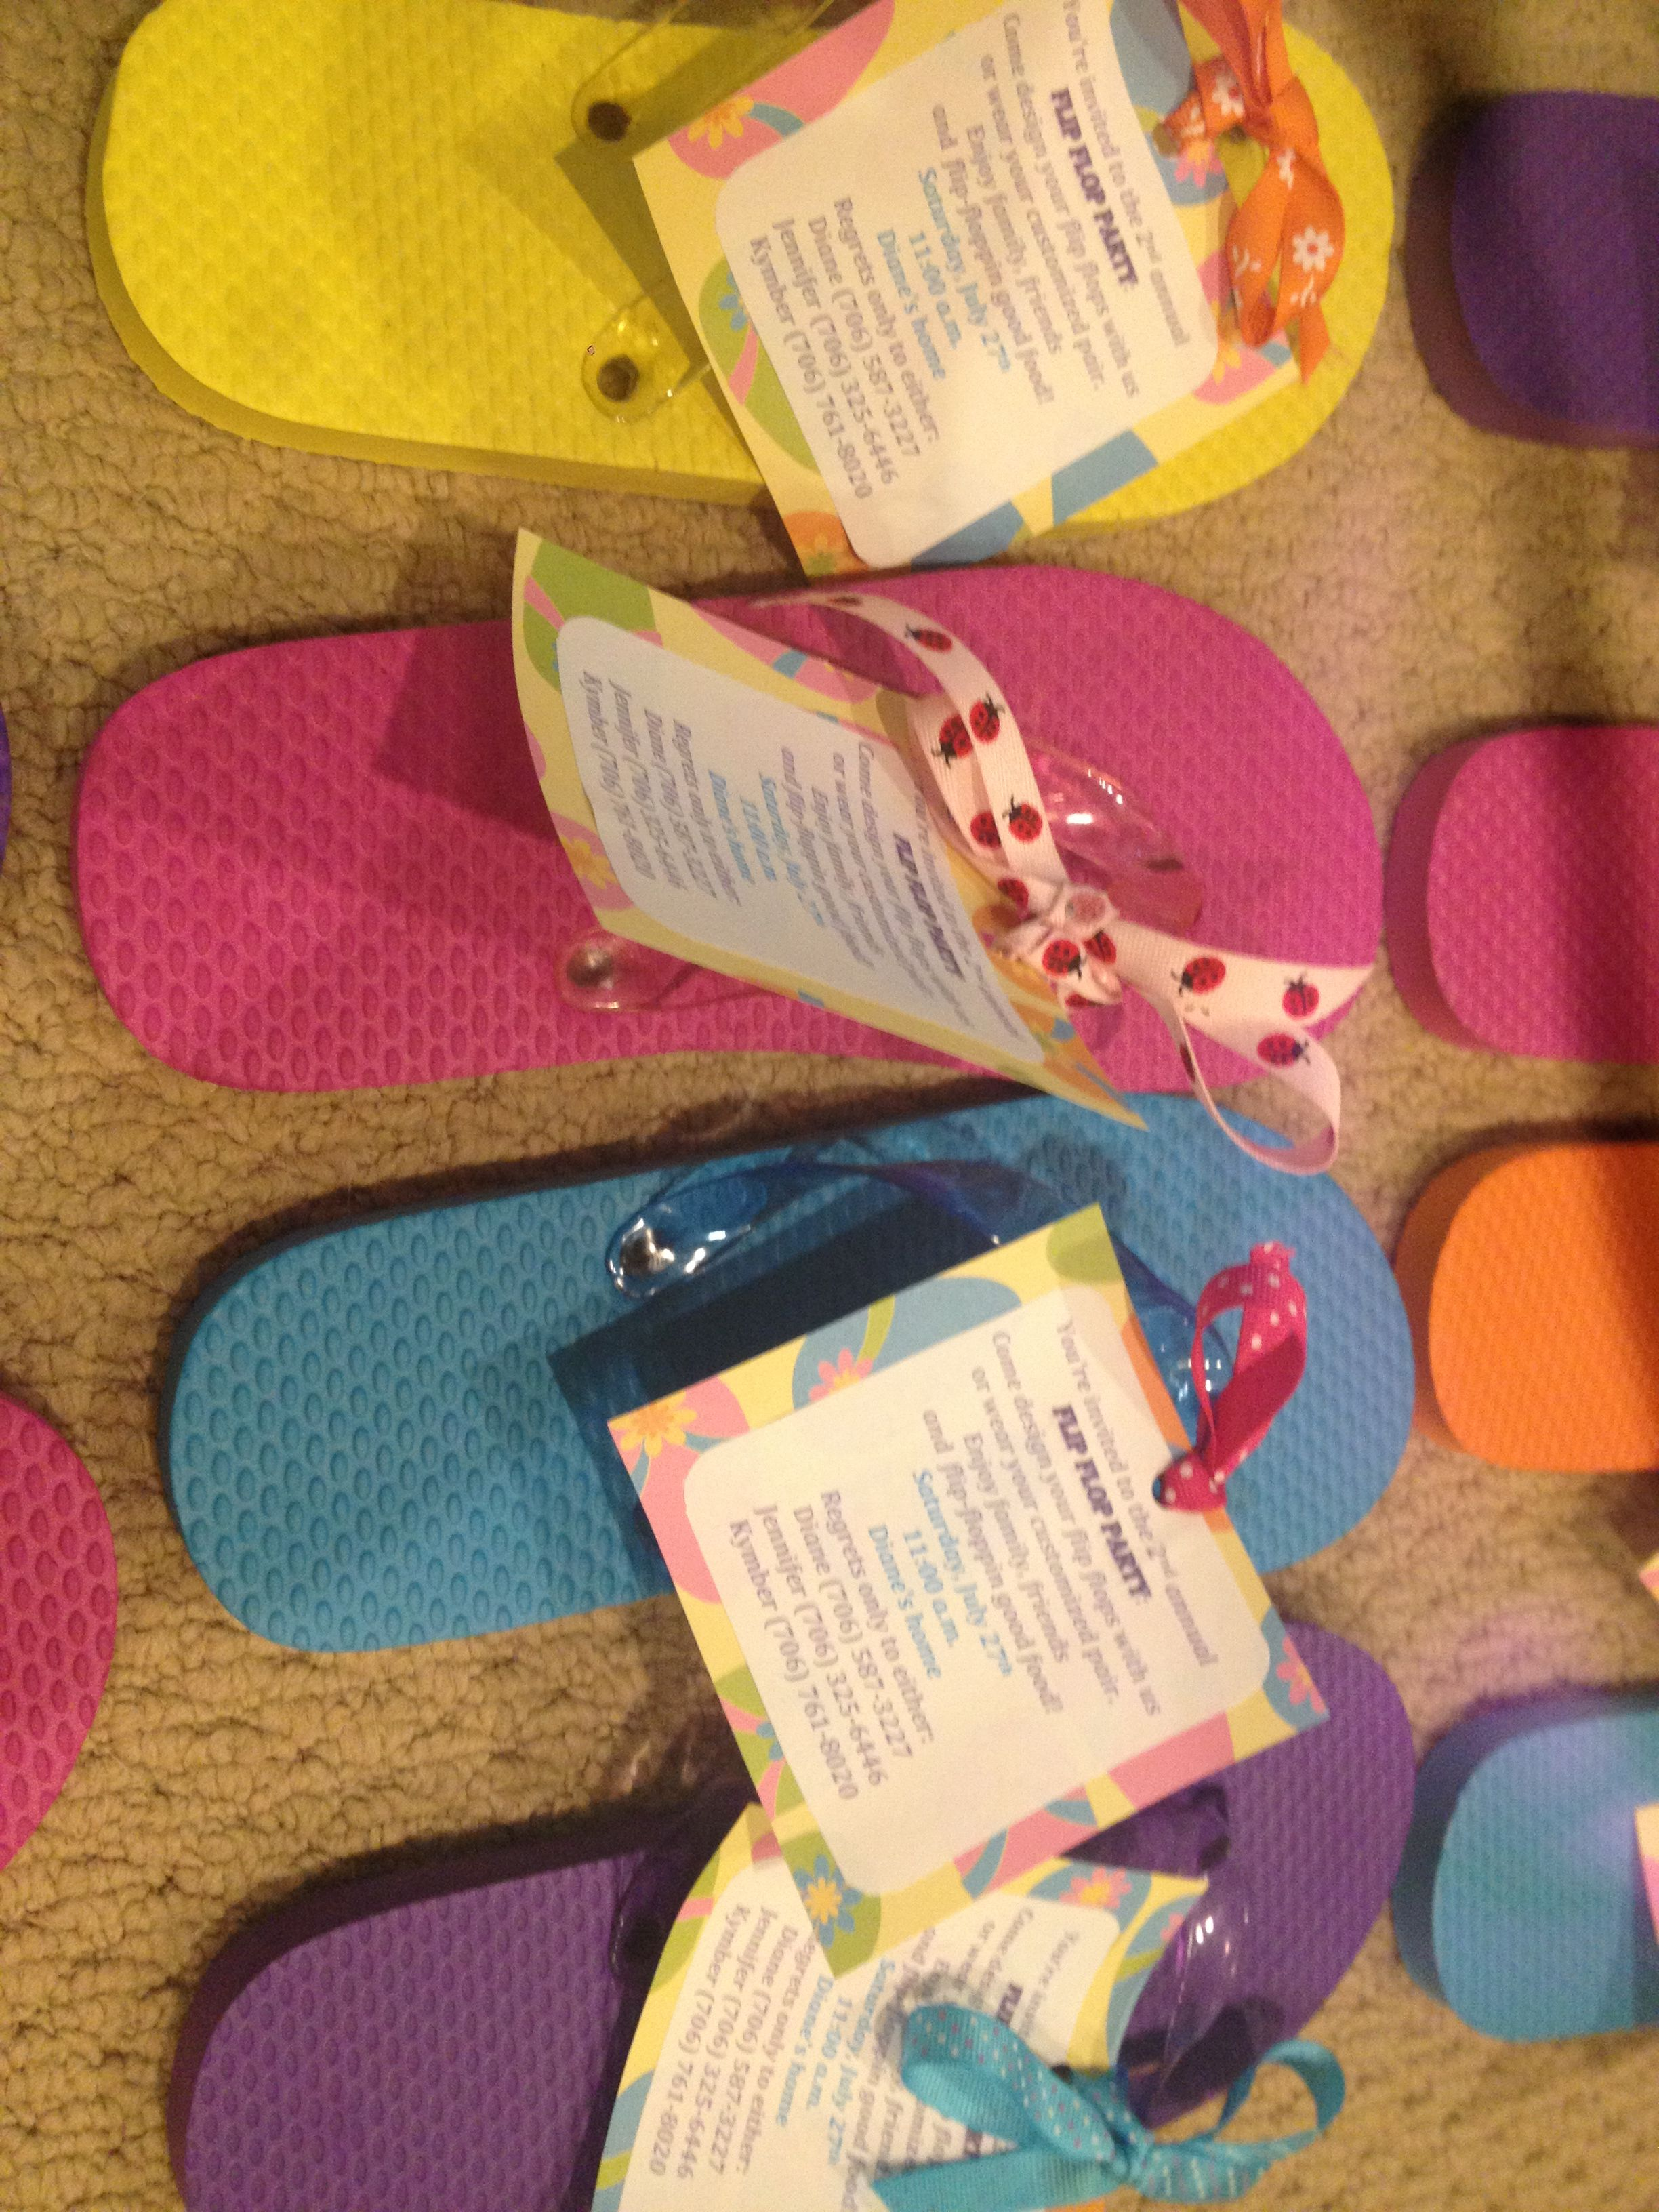 Flip flop party invitations Did you know you can MAIL A FLIP FLOP – Flip Flop Party Invitations